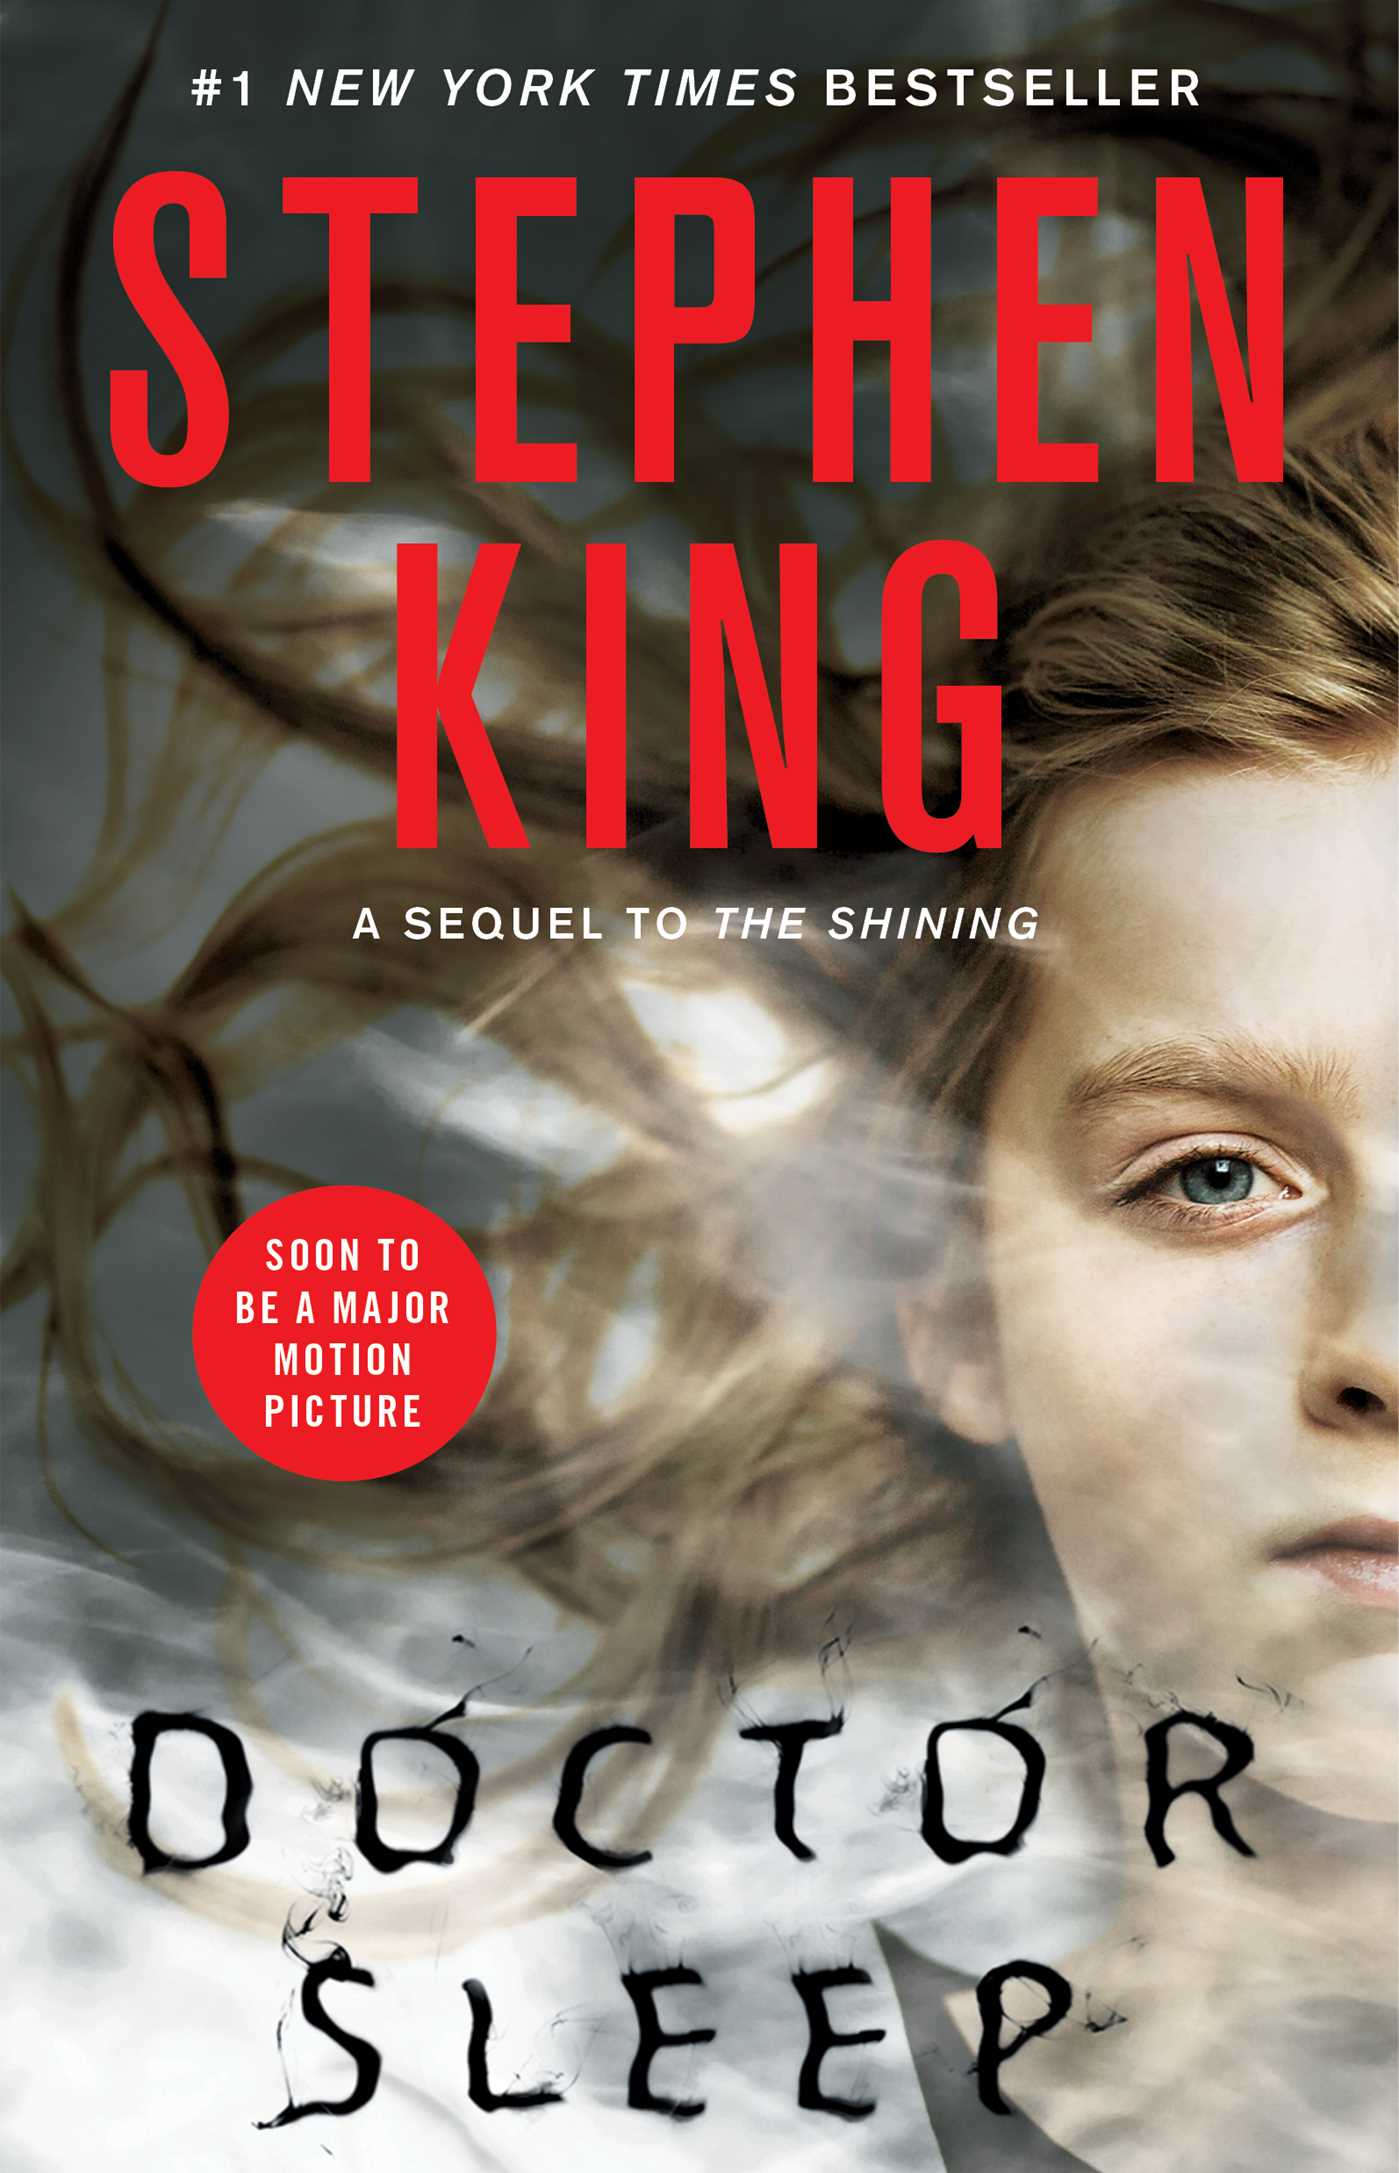 Doctor sleep 9781451698855 hr